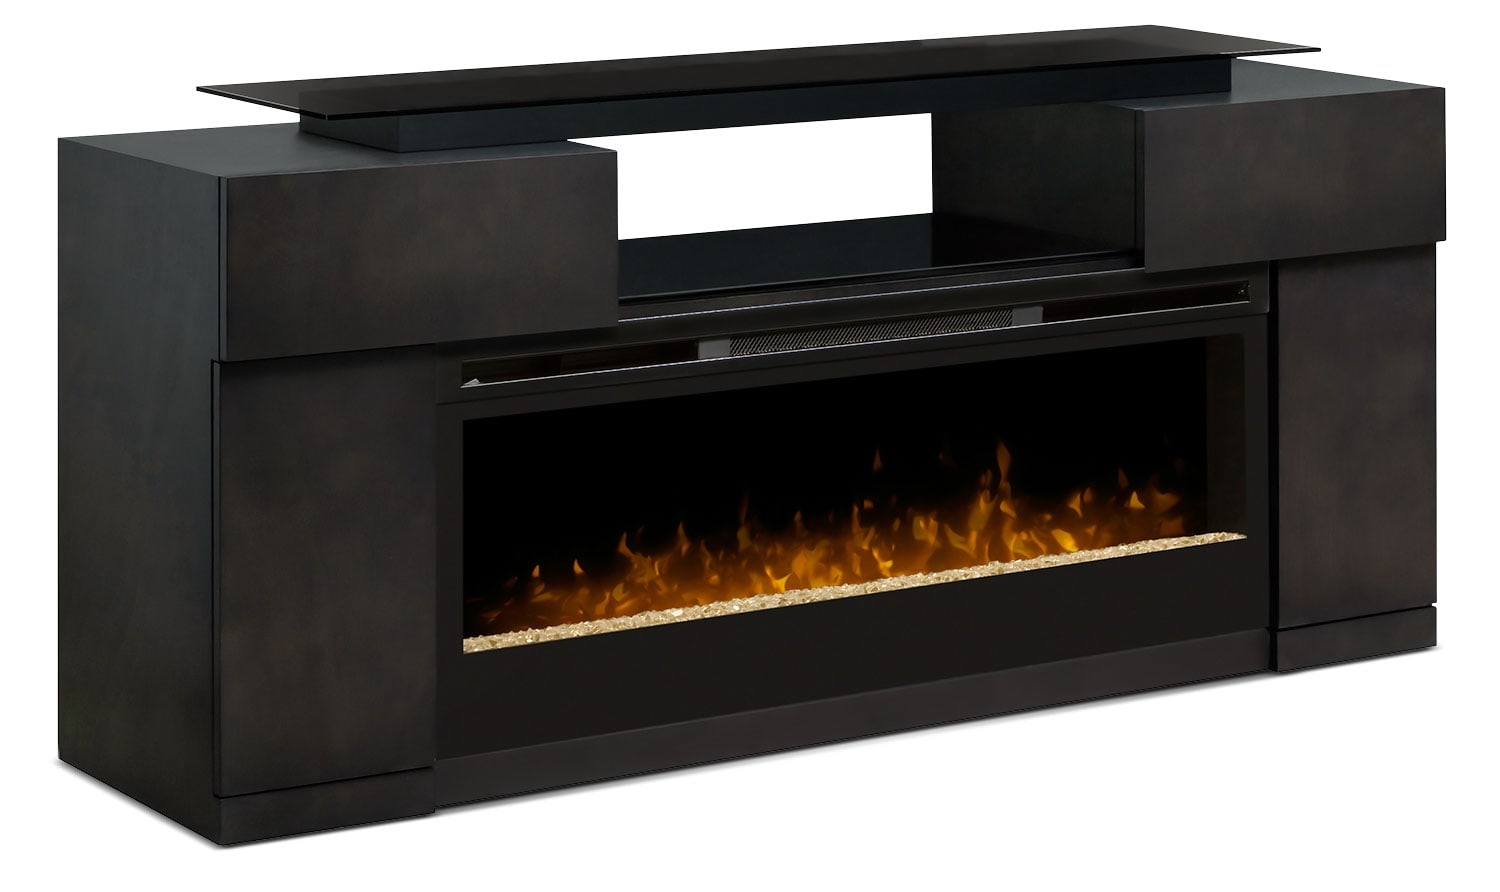 Concord 73 Tv Stand With Glass Ember Firebox The Brick